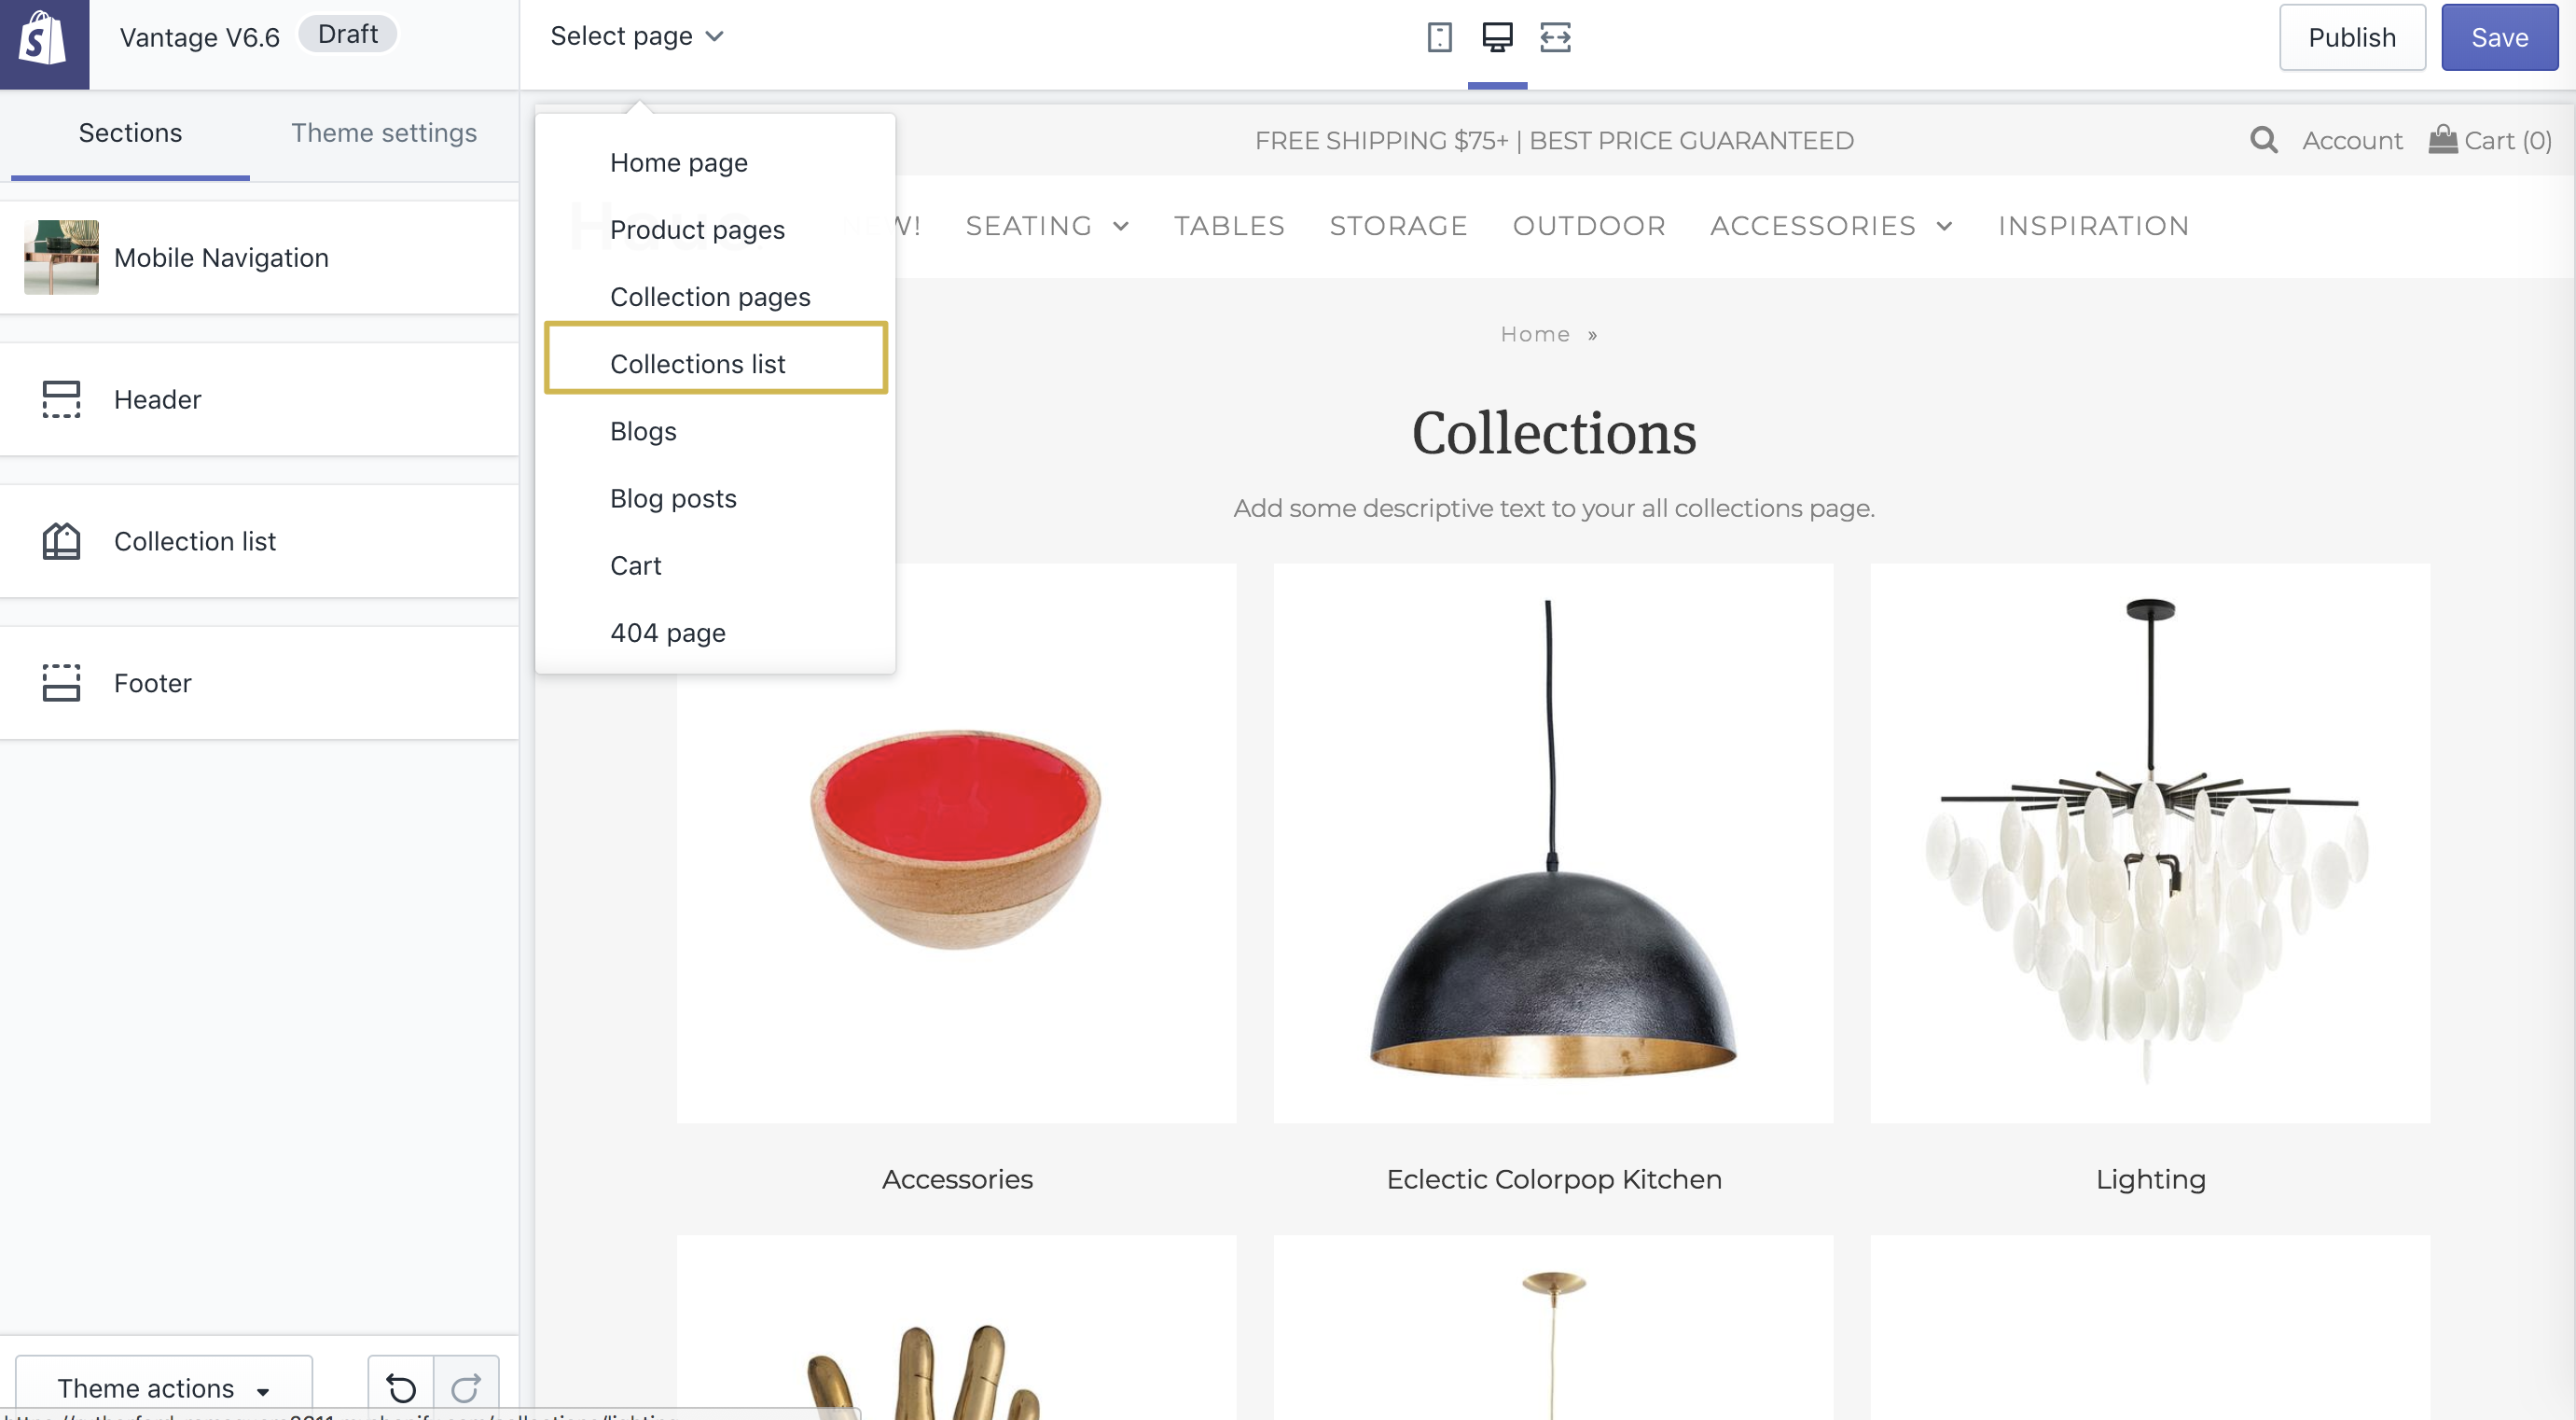 ac13f54dfaee To edit the all collections page, from your theme editor go to the template  picker and choose Collections list.